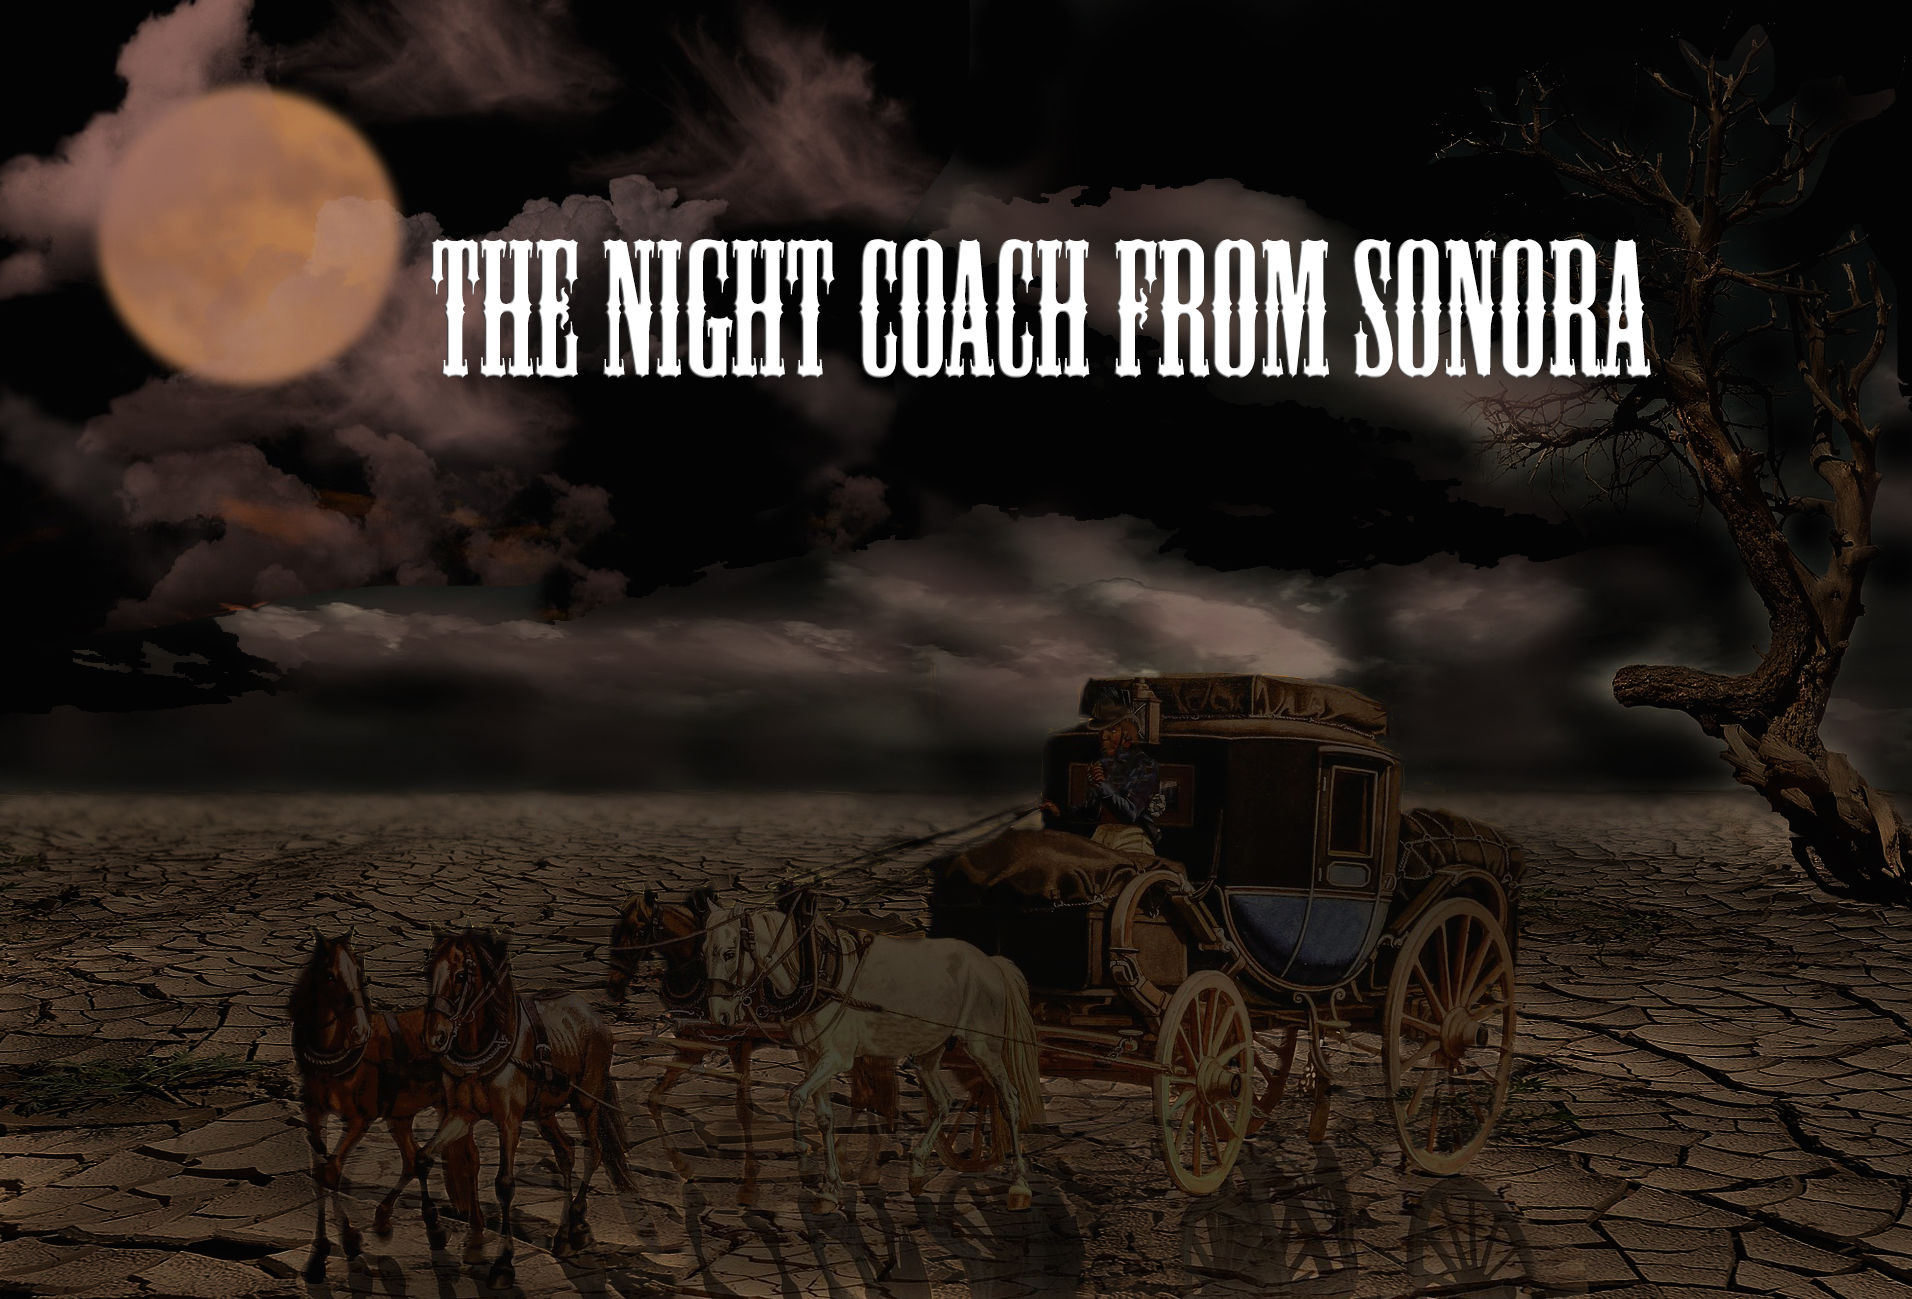 THE NIGHT COACH FROM SONORA